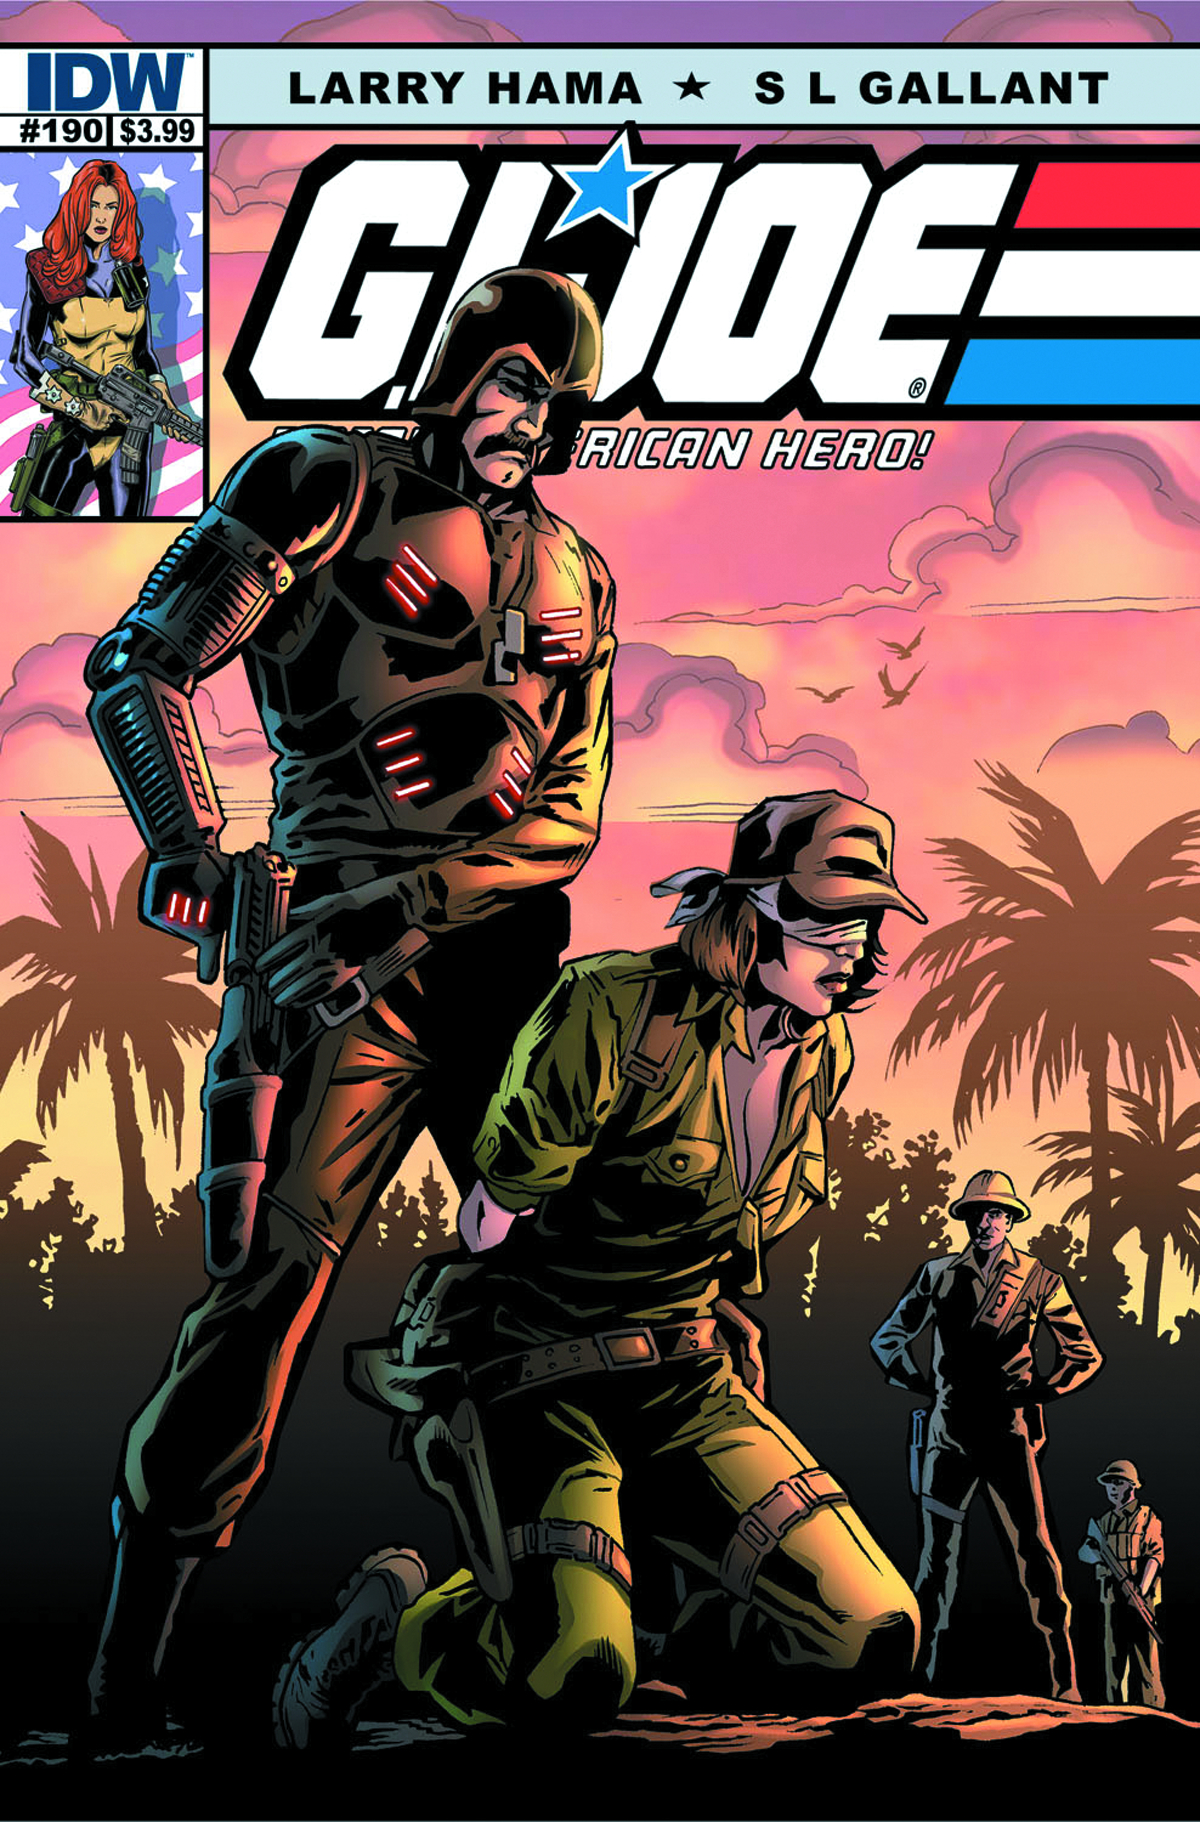 GI JOE A REAL AMERICAN HERO #190